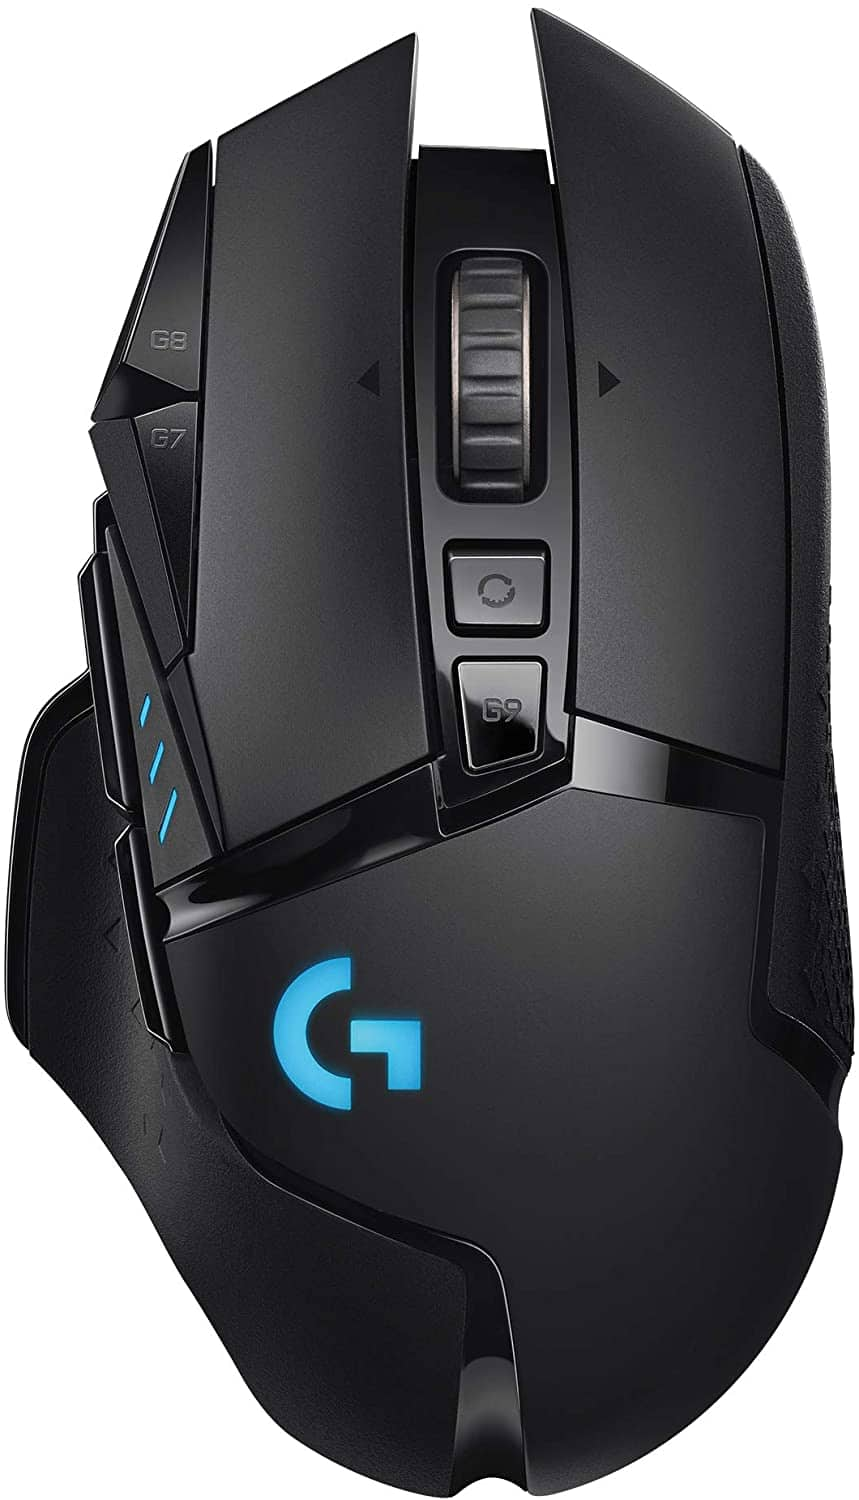 Logitech - G502 Lightspeed Wireless Optical Gaming Mouse with RGB Lighting - $119.99